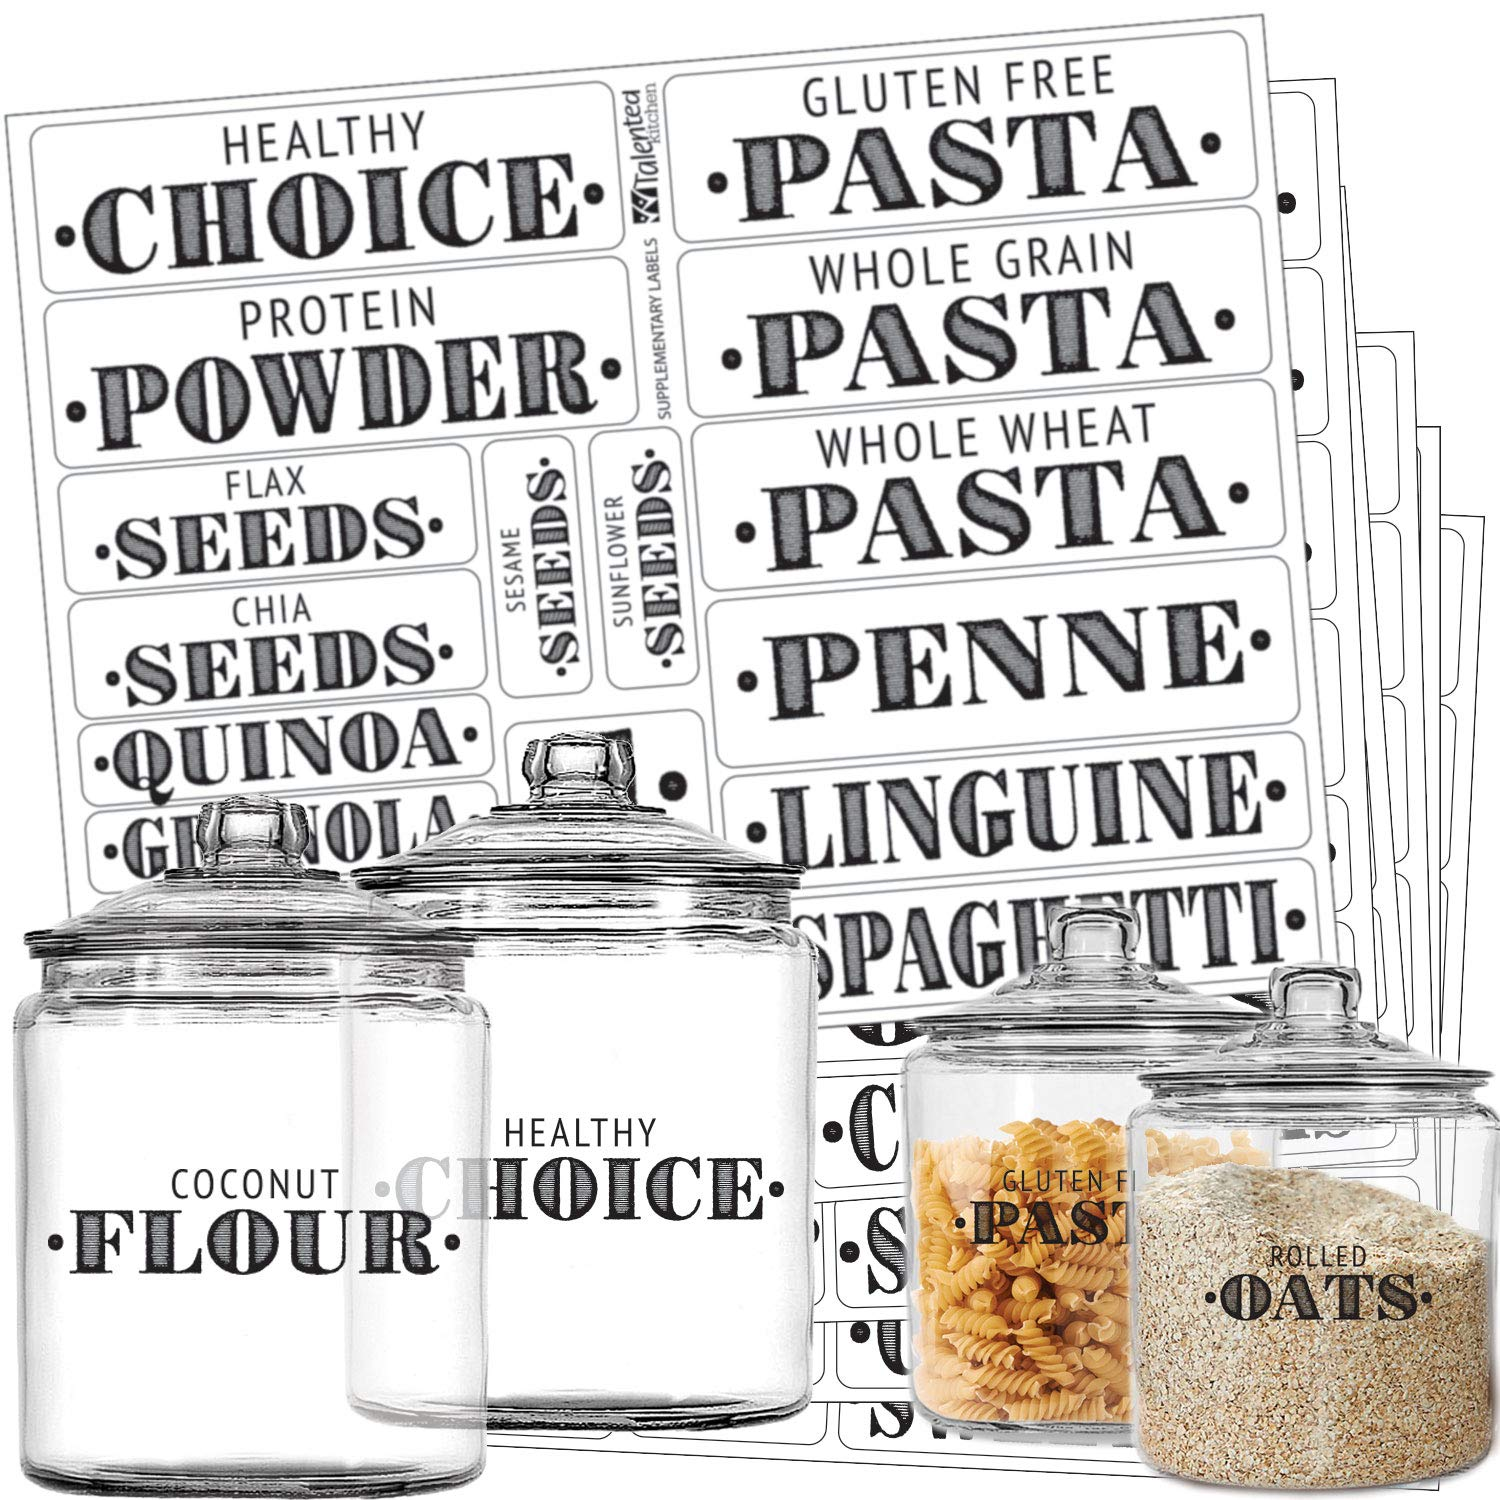 Talented Kitchen Farmhouse Pantry Labels – 110 Healthy Ingredients – Food Pantry Label Sticker. Water Resistant, Food Jar Labels. Jar Decals Pantry Organization Storage (Set of 110 – Non Main Pantry)